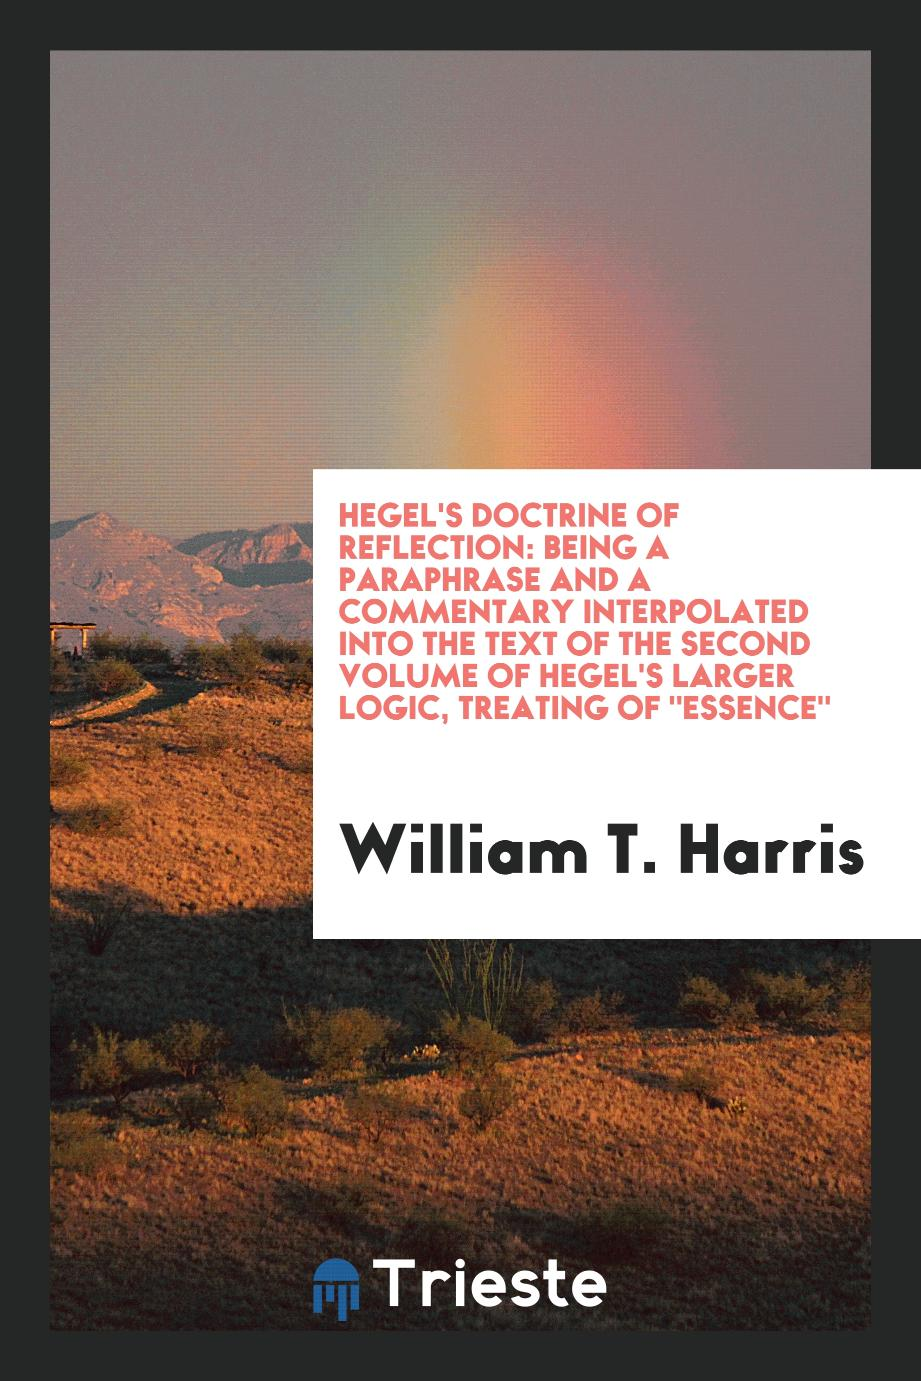 "Hegel's Doctrine of Reflection: Being a Paraphrase and a Commentary Interpolated into the Text of the Second Volume of Hegel's Larger Logic, Treating Of ""Essence"""